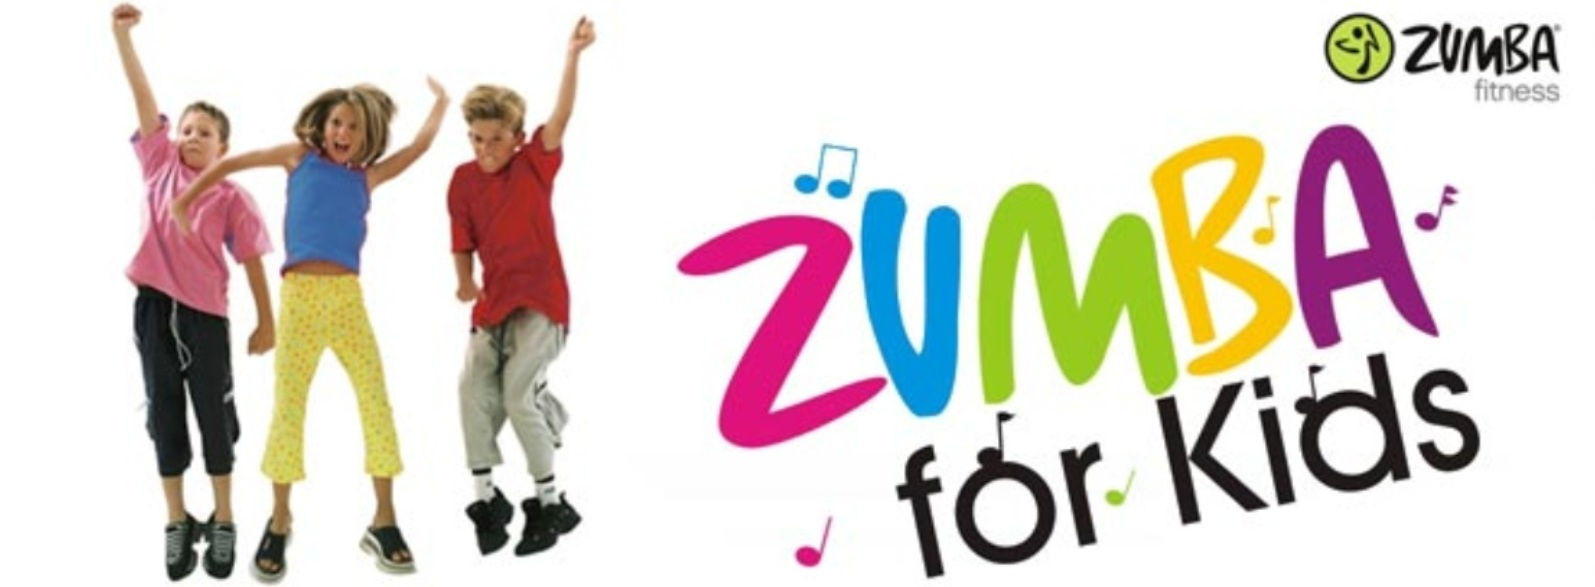 Free zumba cliparts download clip art on 3